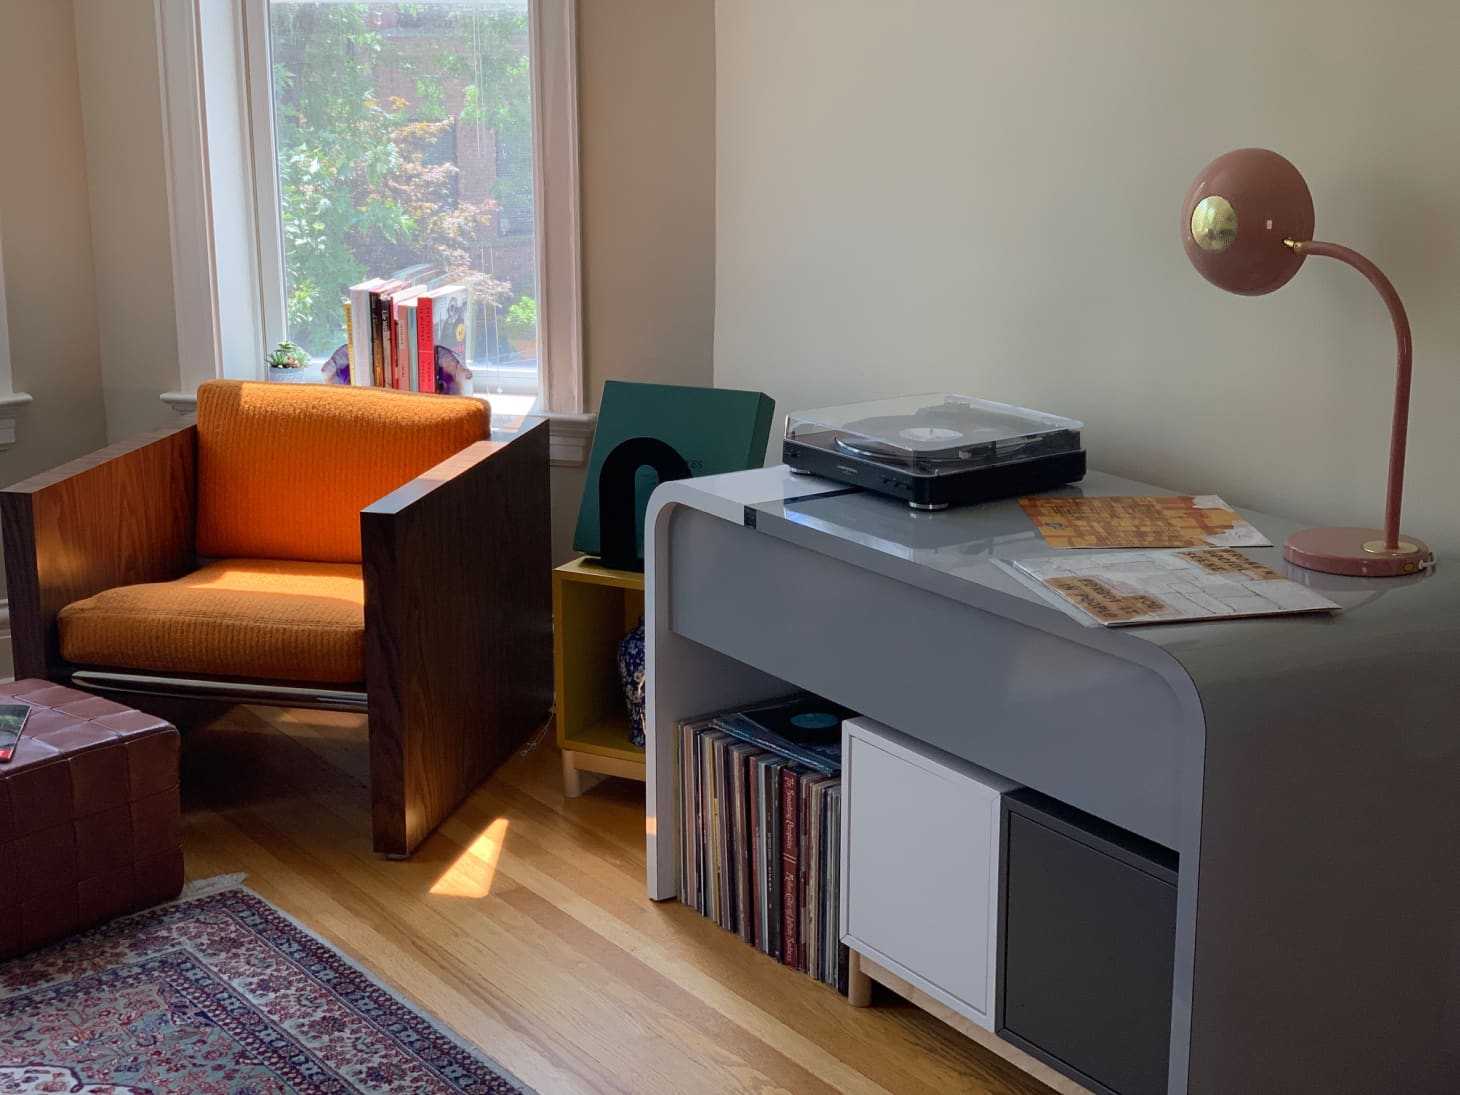 DIY Furniture in a Chicago Rental Apartment | Apartment Therapy